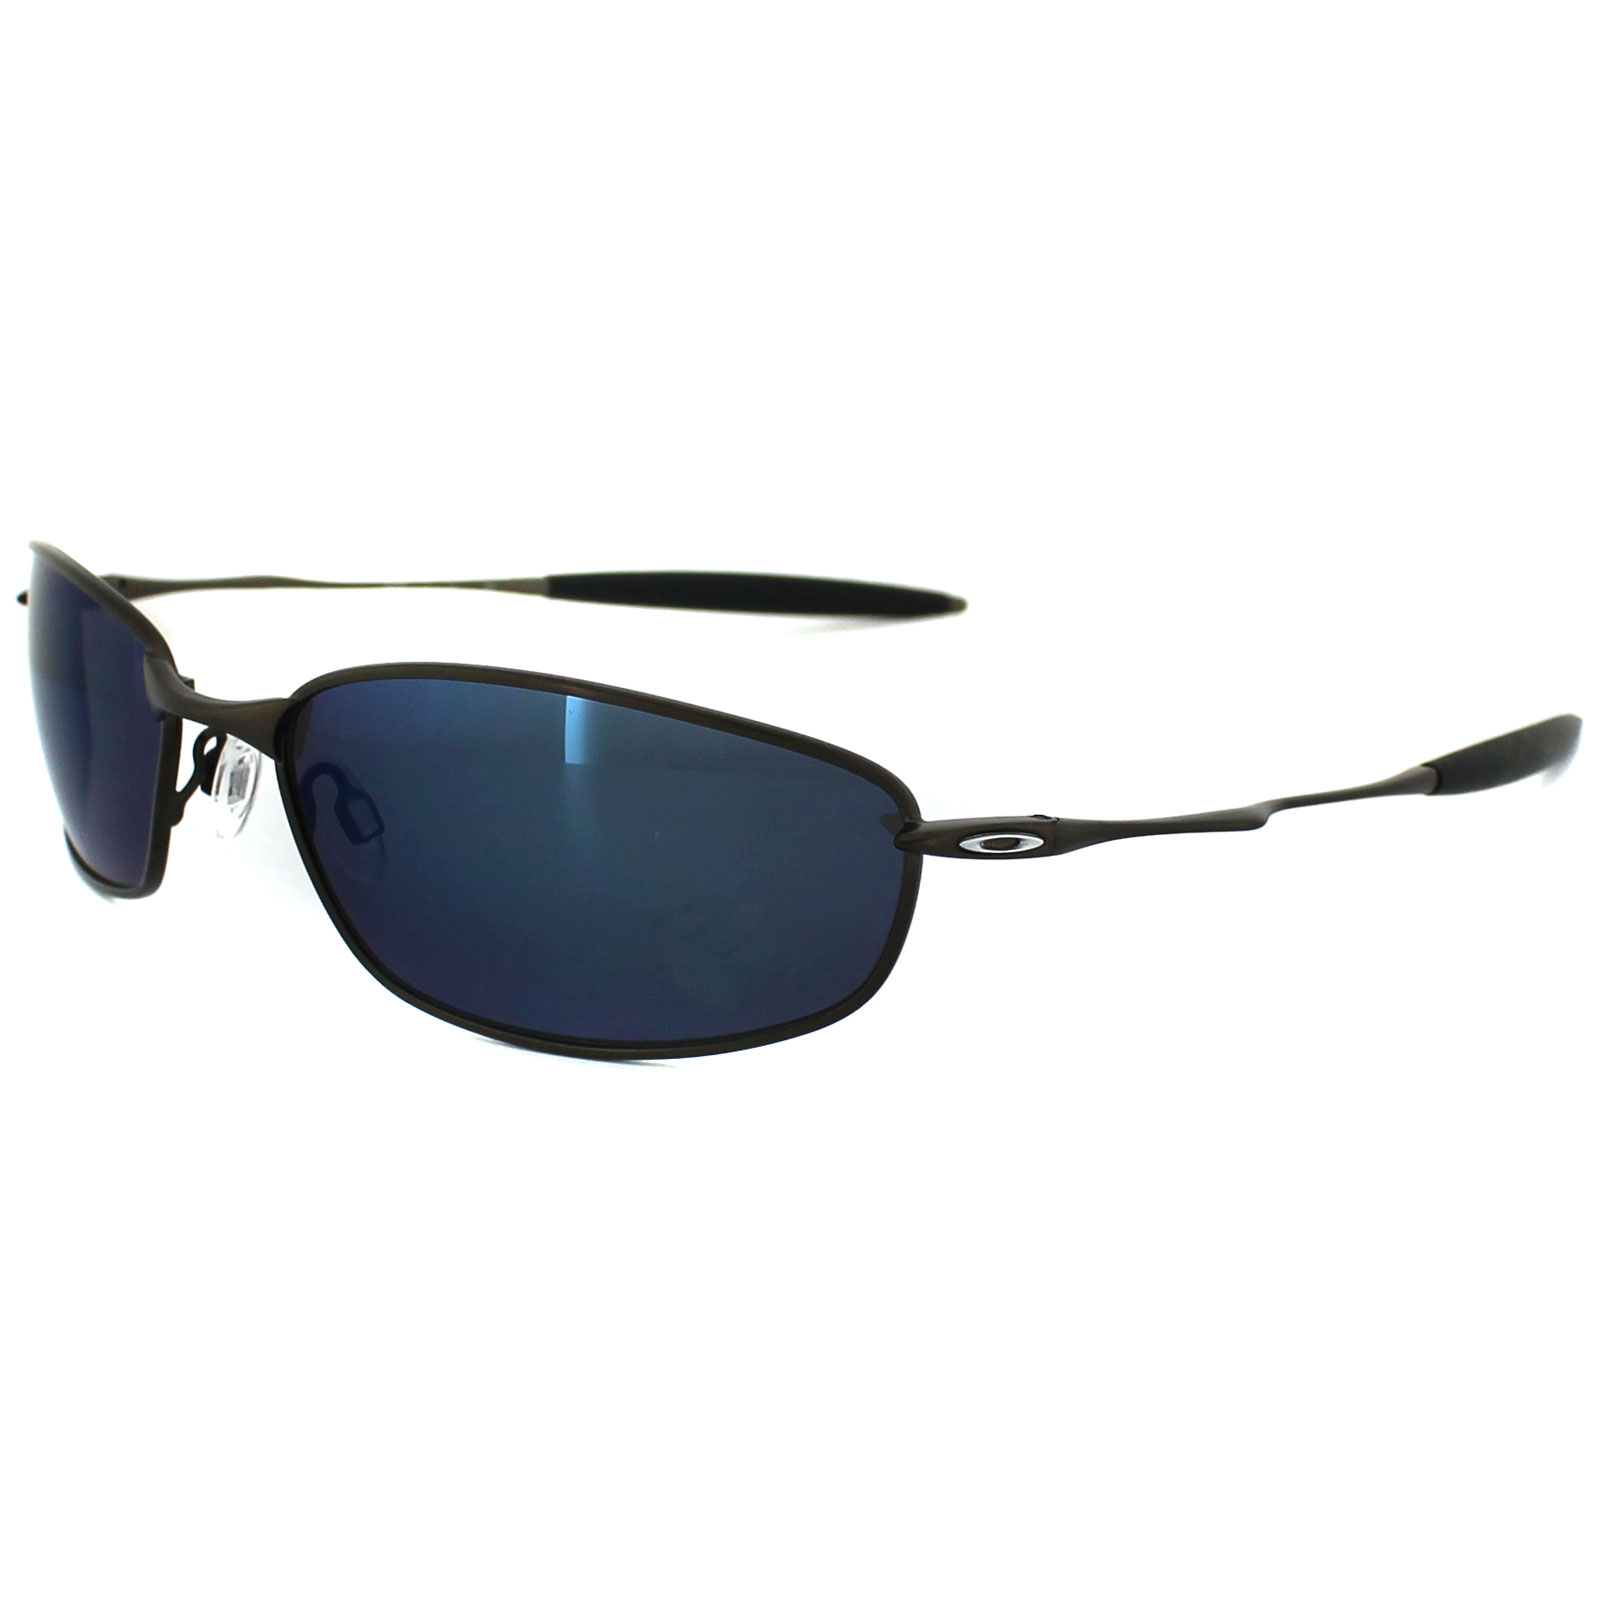 4fa38a4d4c Oakley Whisker Pewter Sunglasses « Heritage Malta